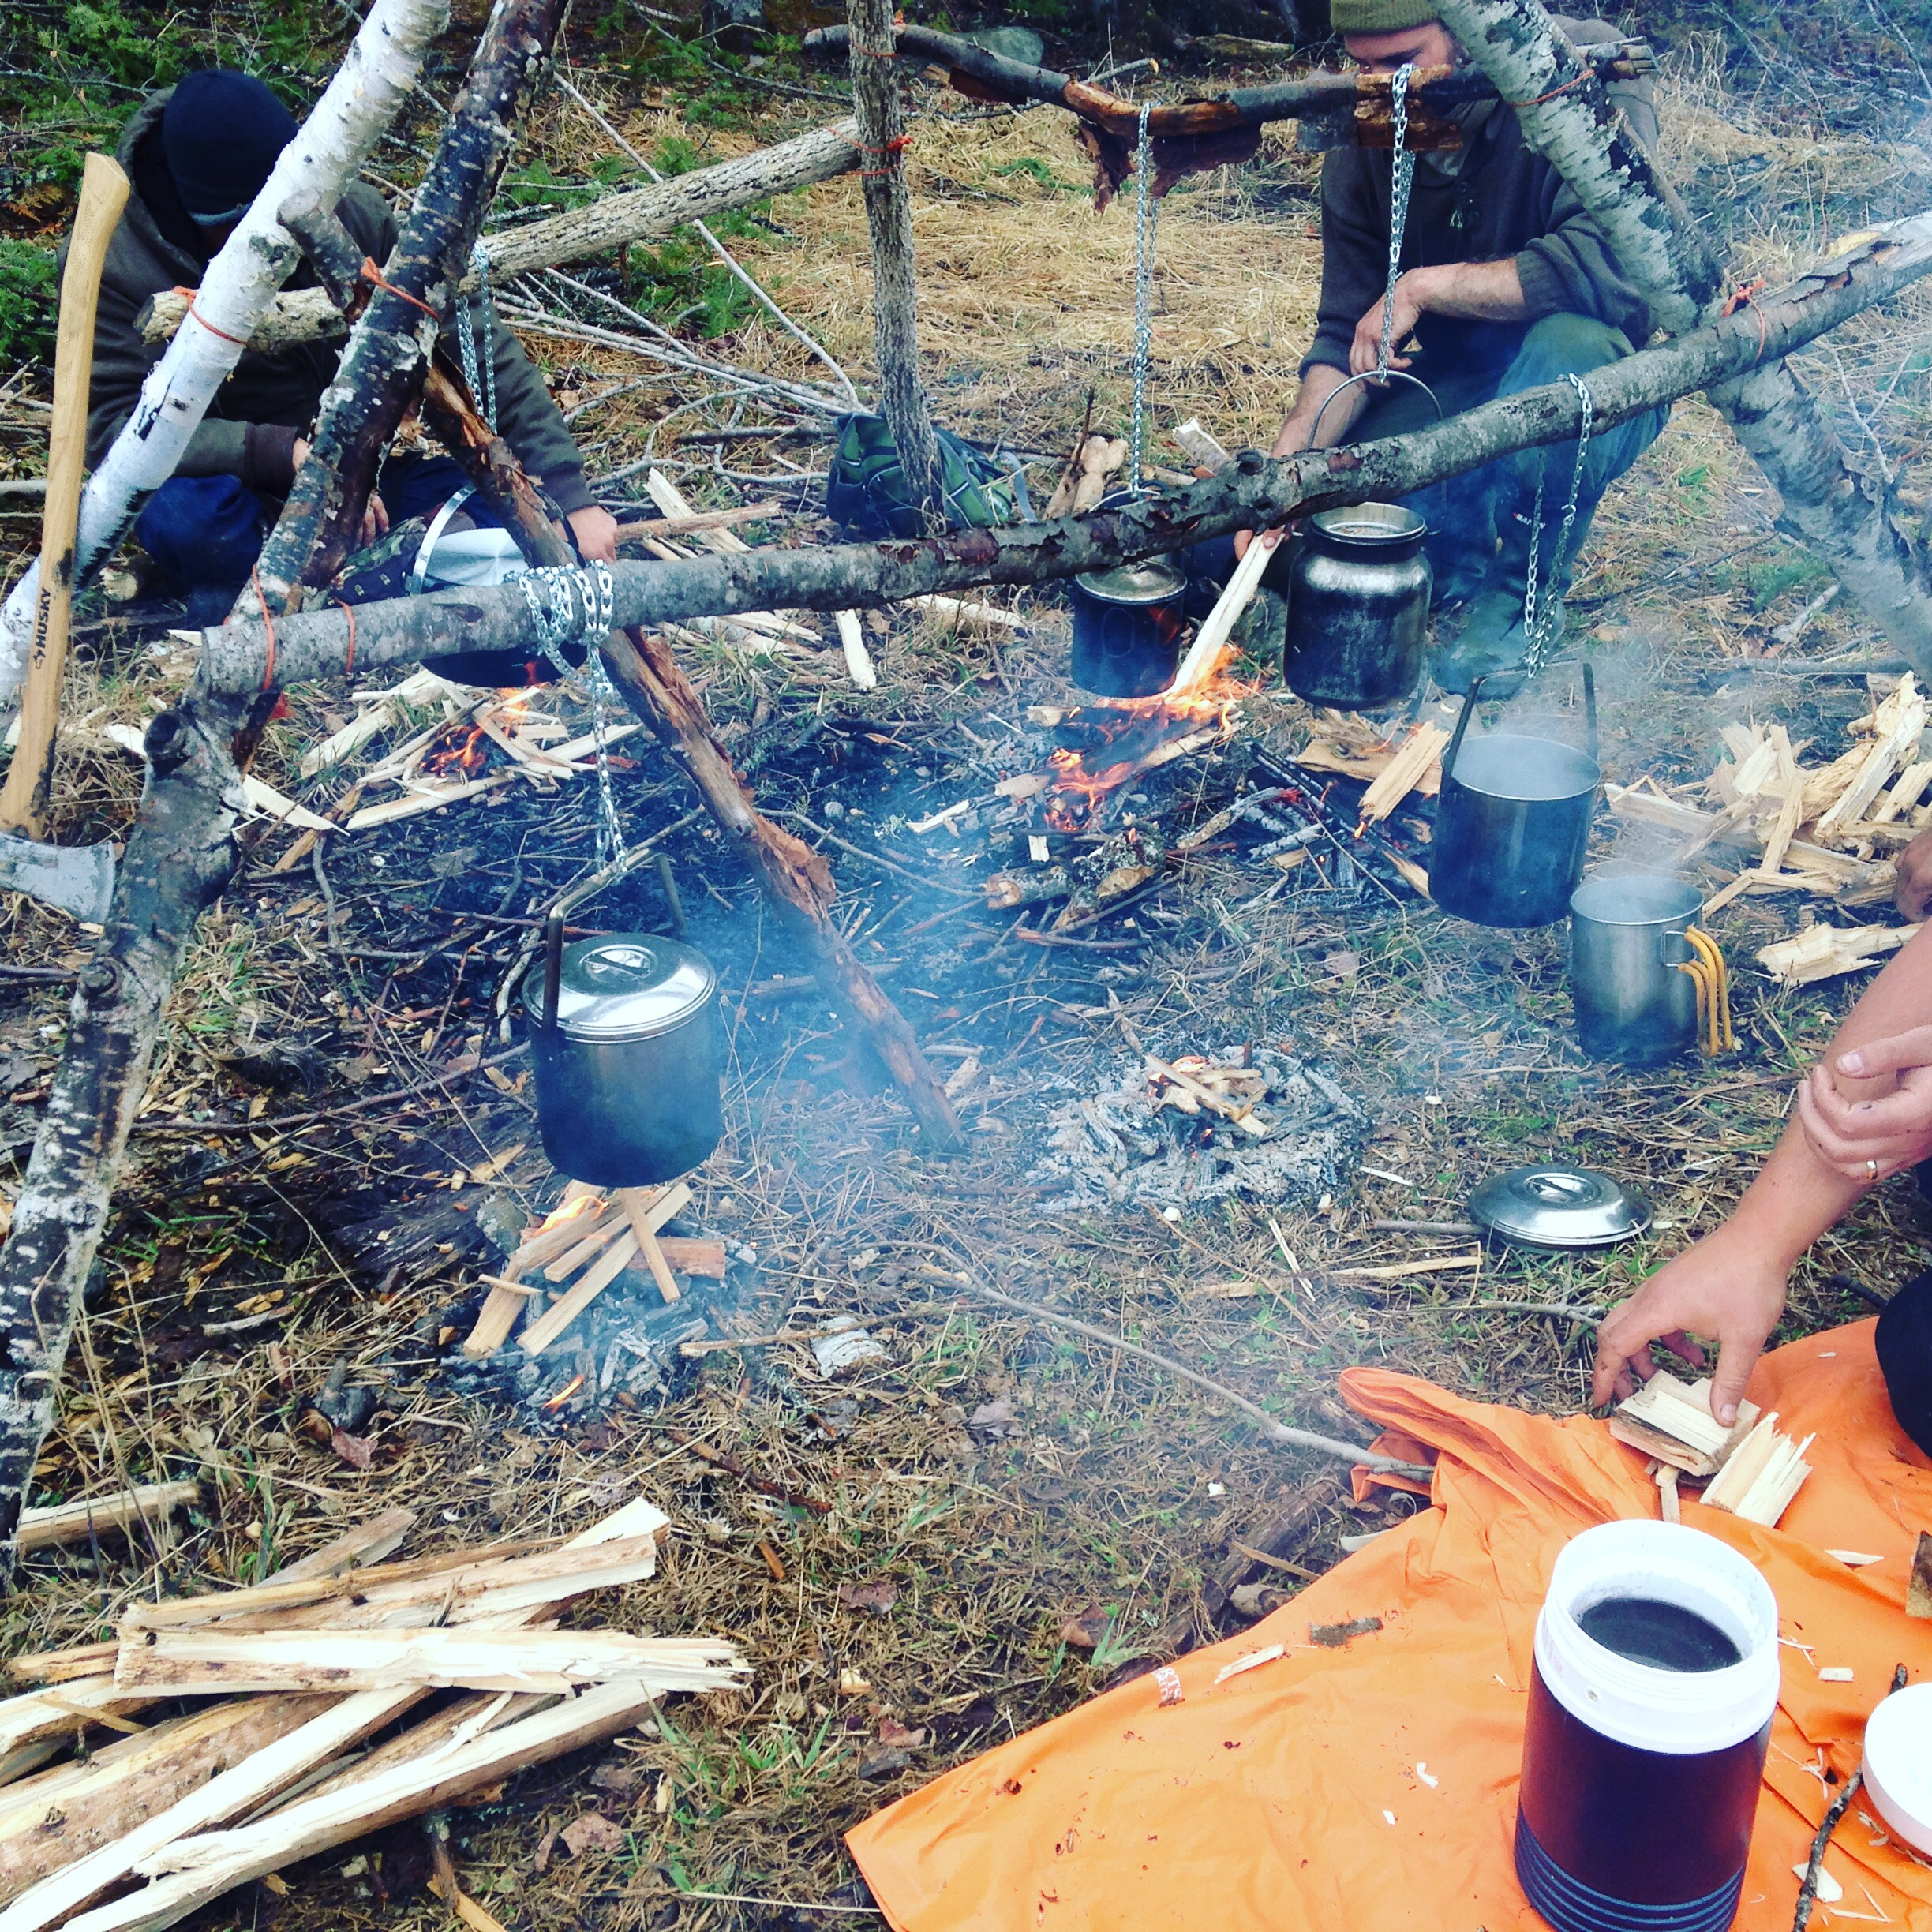 Autumn Woodsman Course November 4-10 | Cold-Weather Training With No Snow